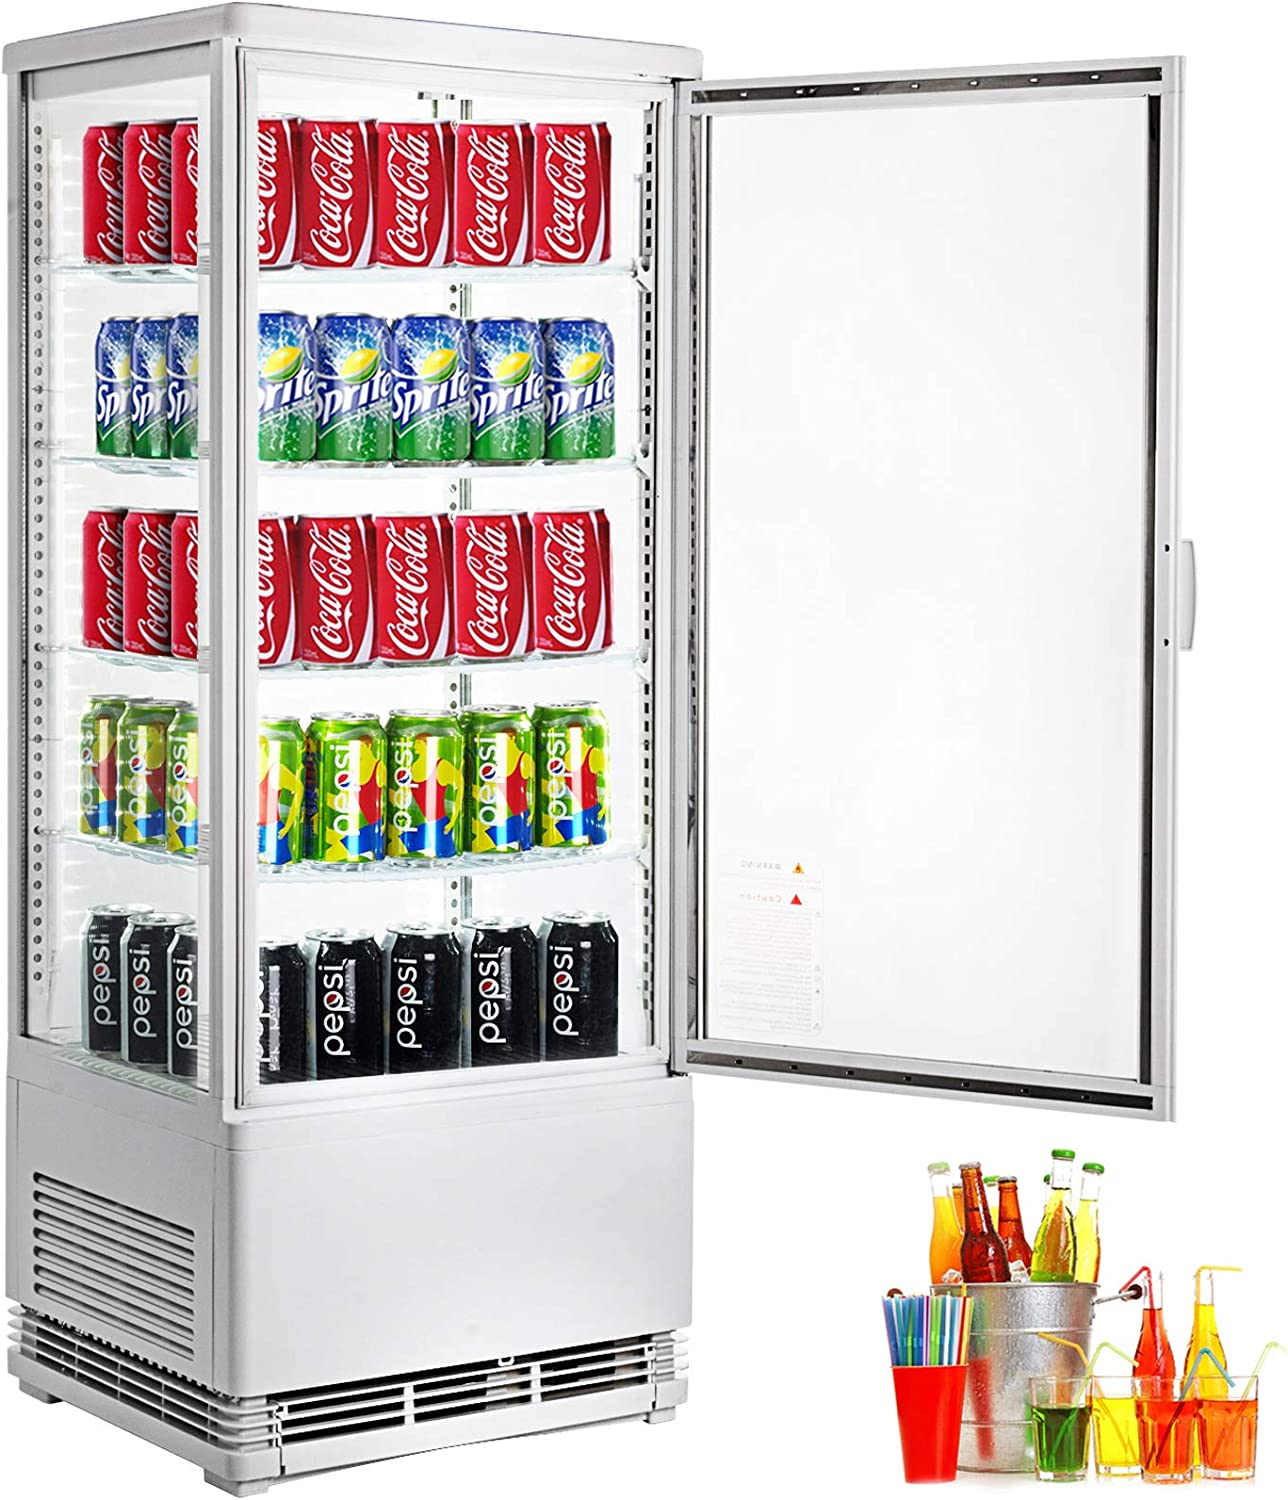 VBENLEM 3.5 cu.ft. Commercial Beverage Refrigerator 98L Glass Door Countertop Display Cooler Drink Show Case with LED Lighting White Freestanding Display Fridge for Supermaket Bar Office Use